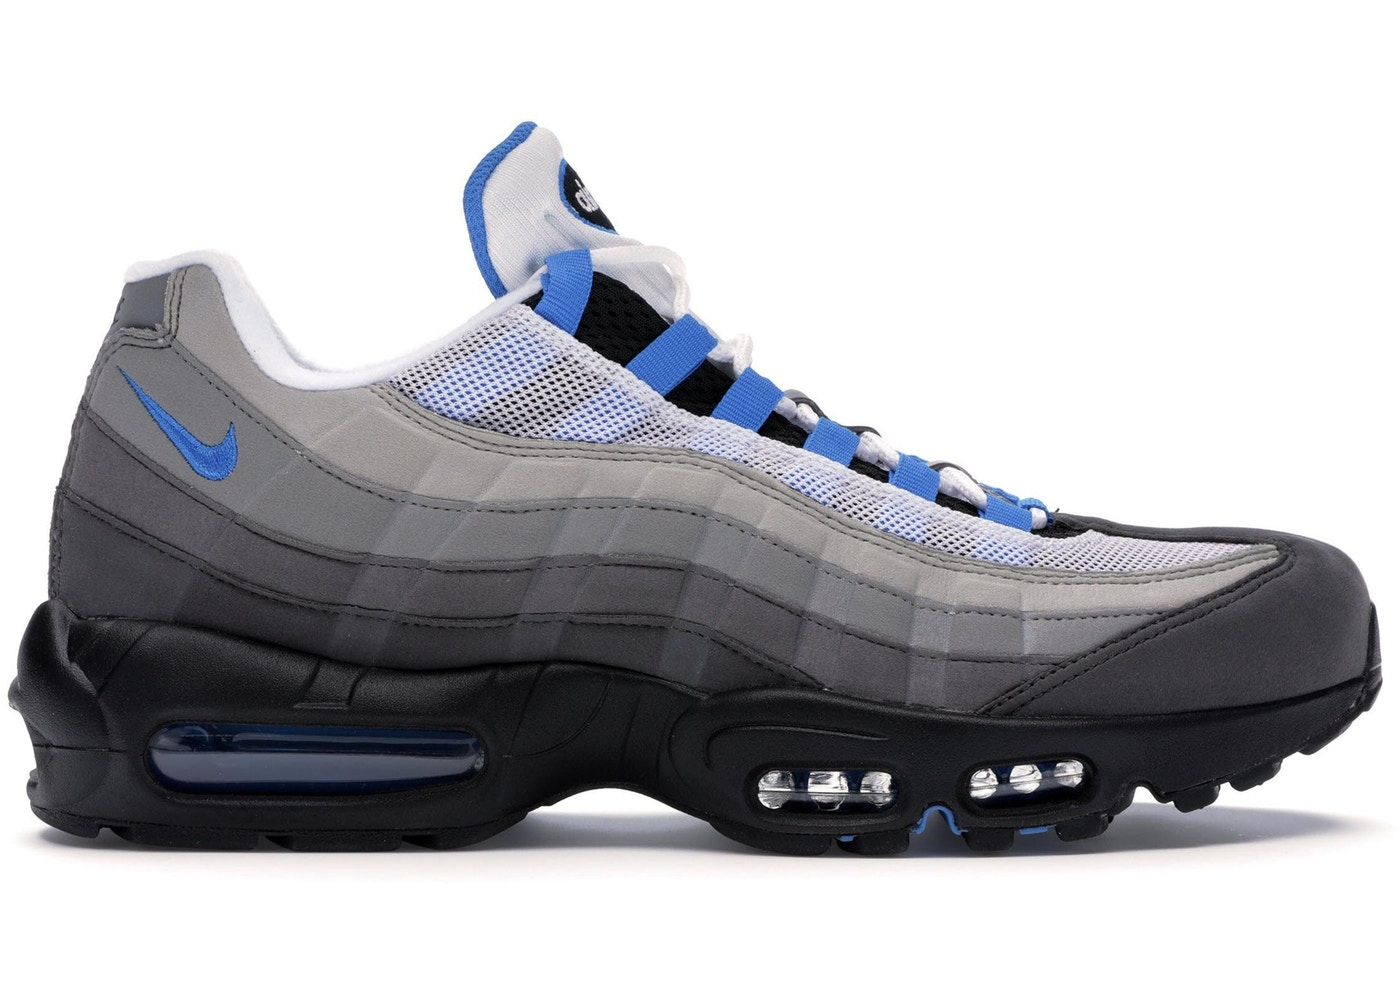 98a891ff Air Max 95 OG Crystal Blue - AT8696-100